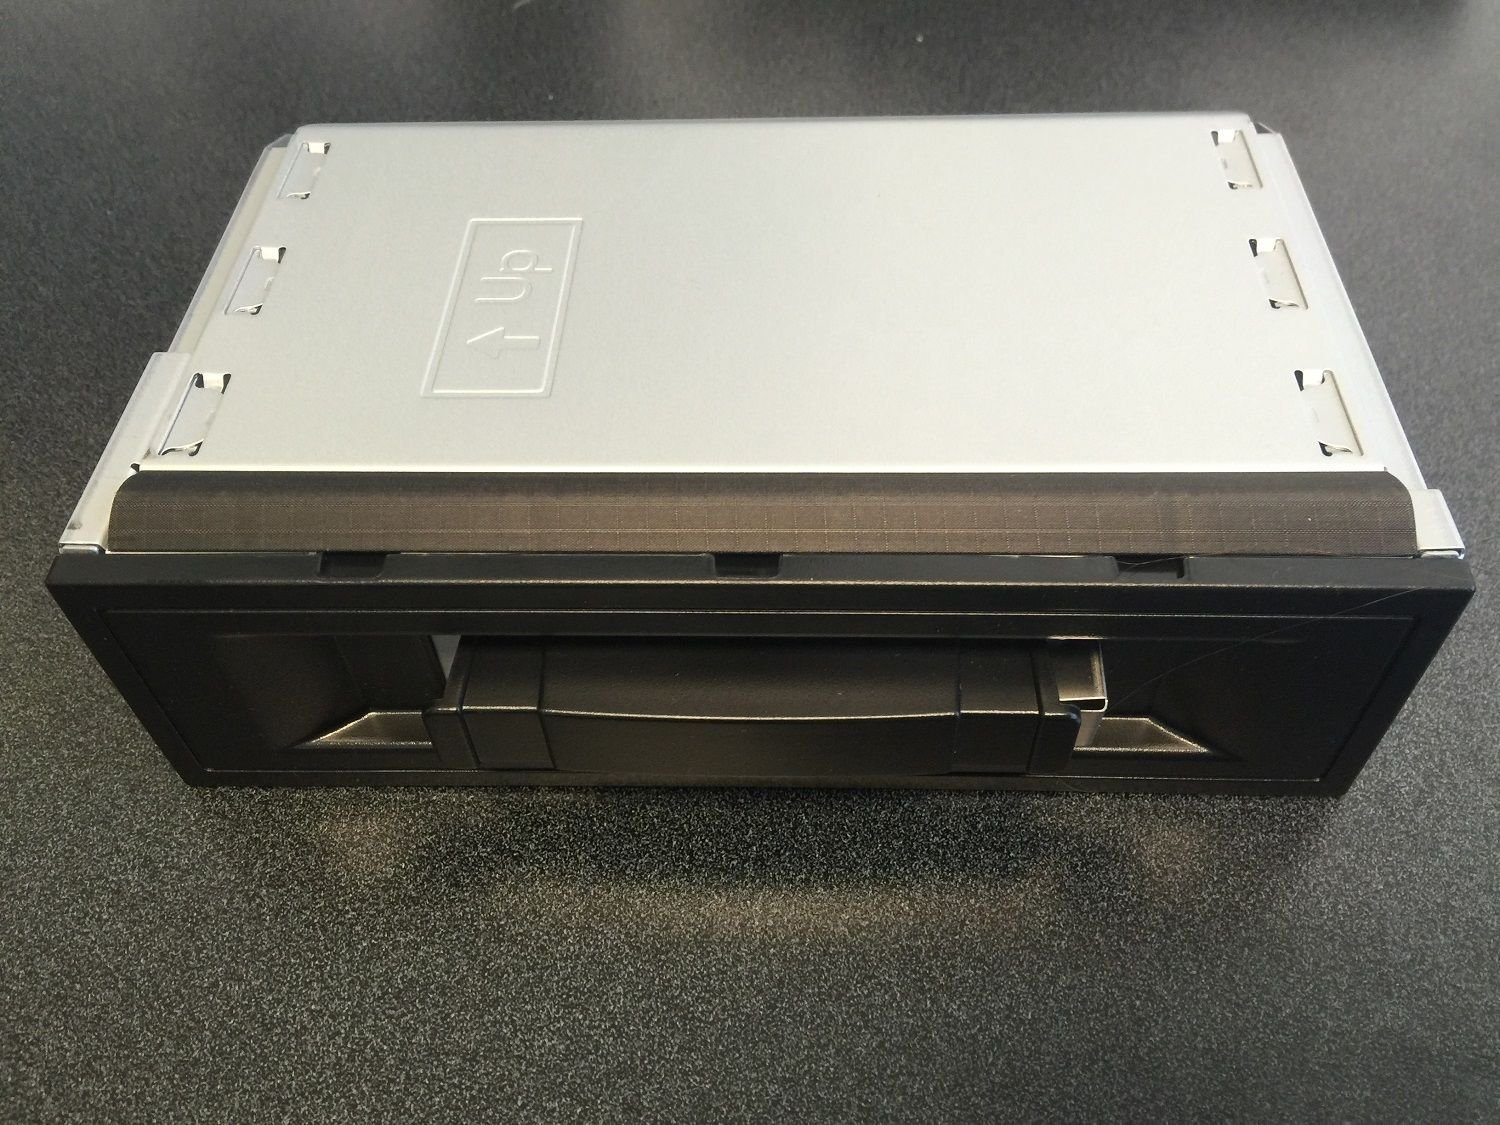 New HP Blade system BLC7000 BLC3000 Hard Drive Blank Panel Filler 578715-002